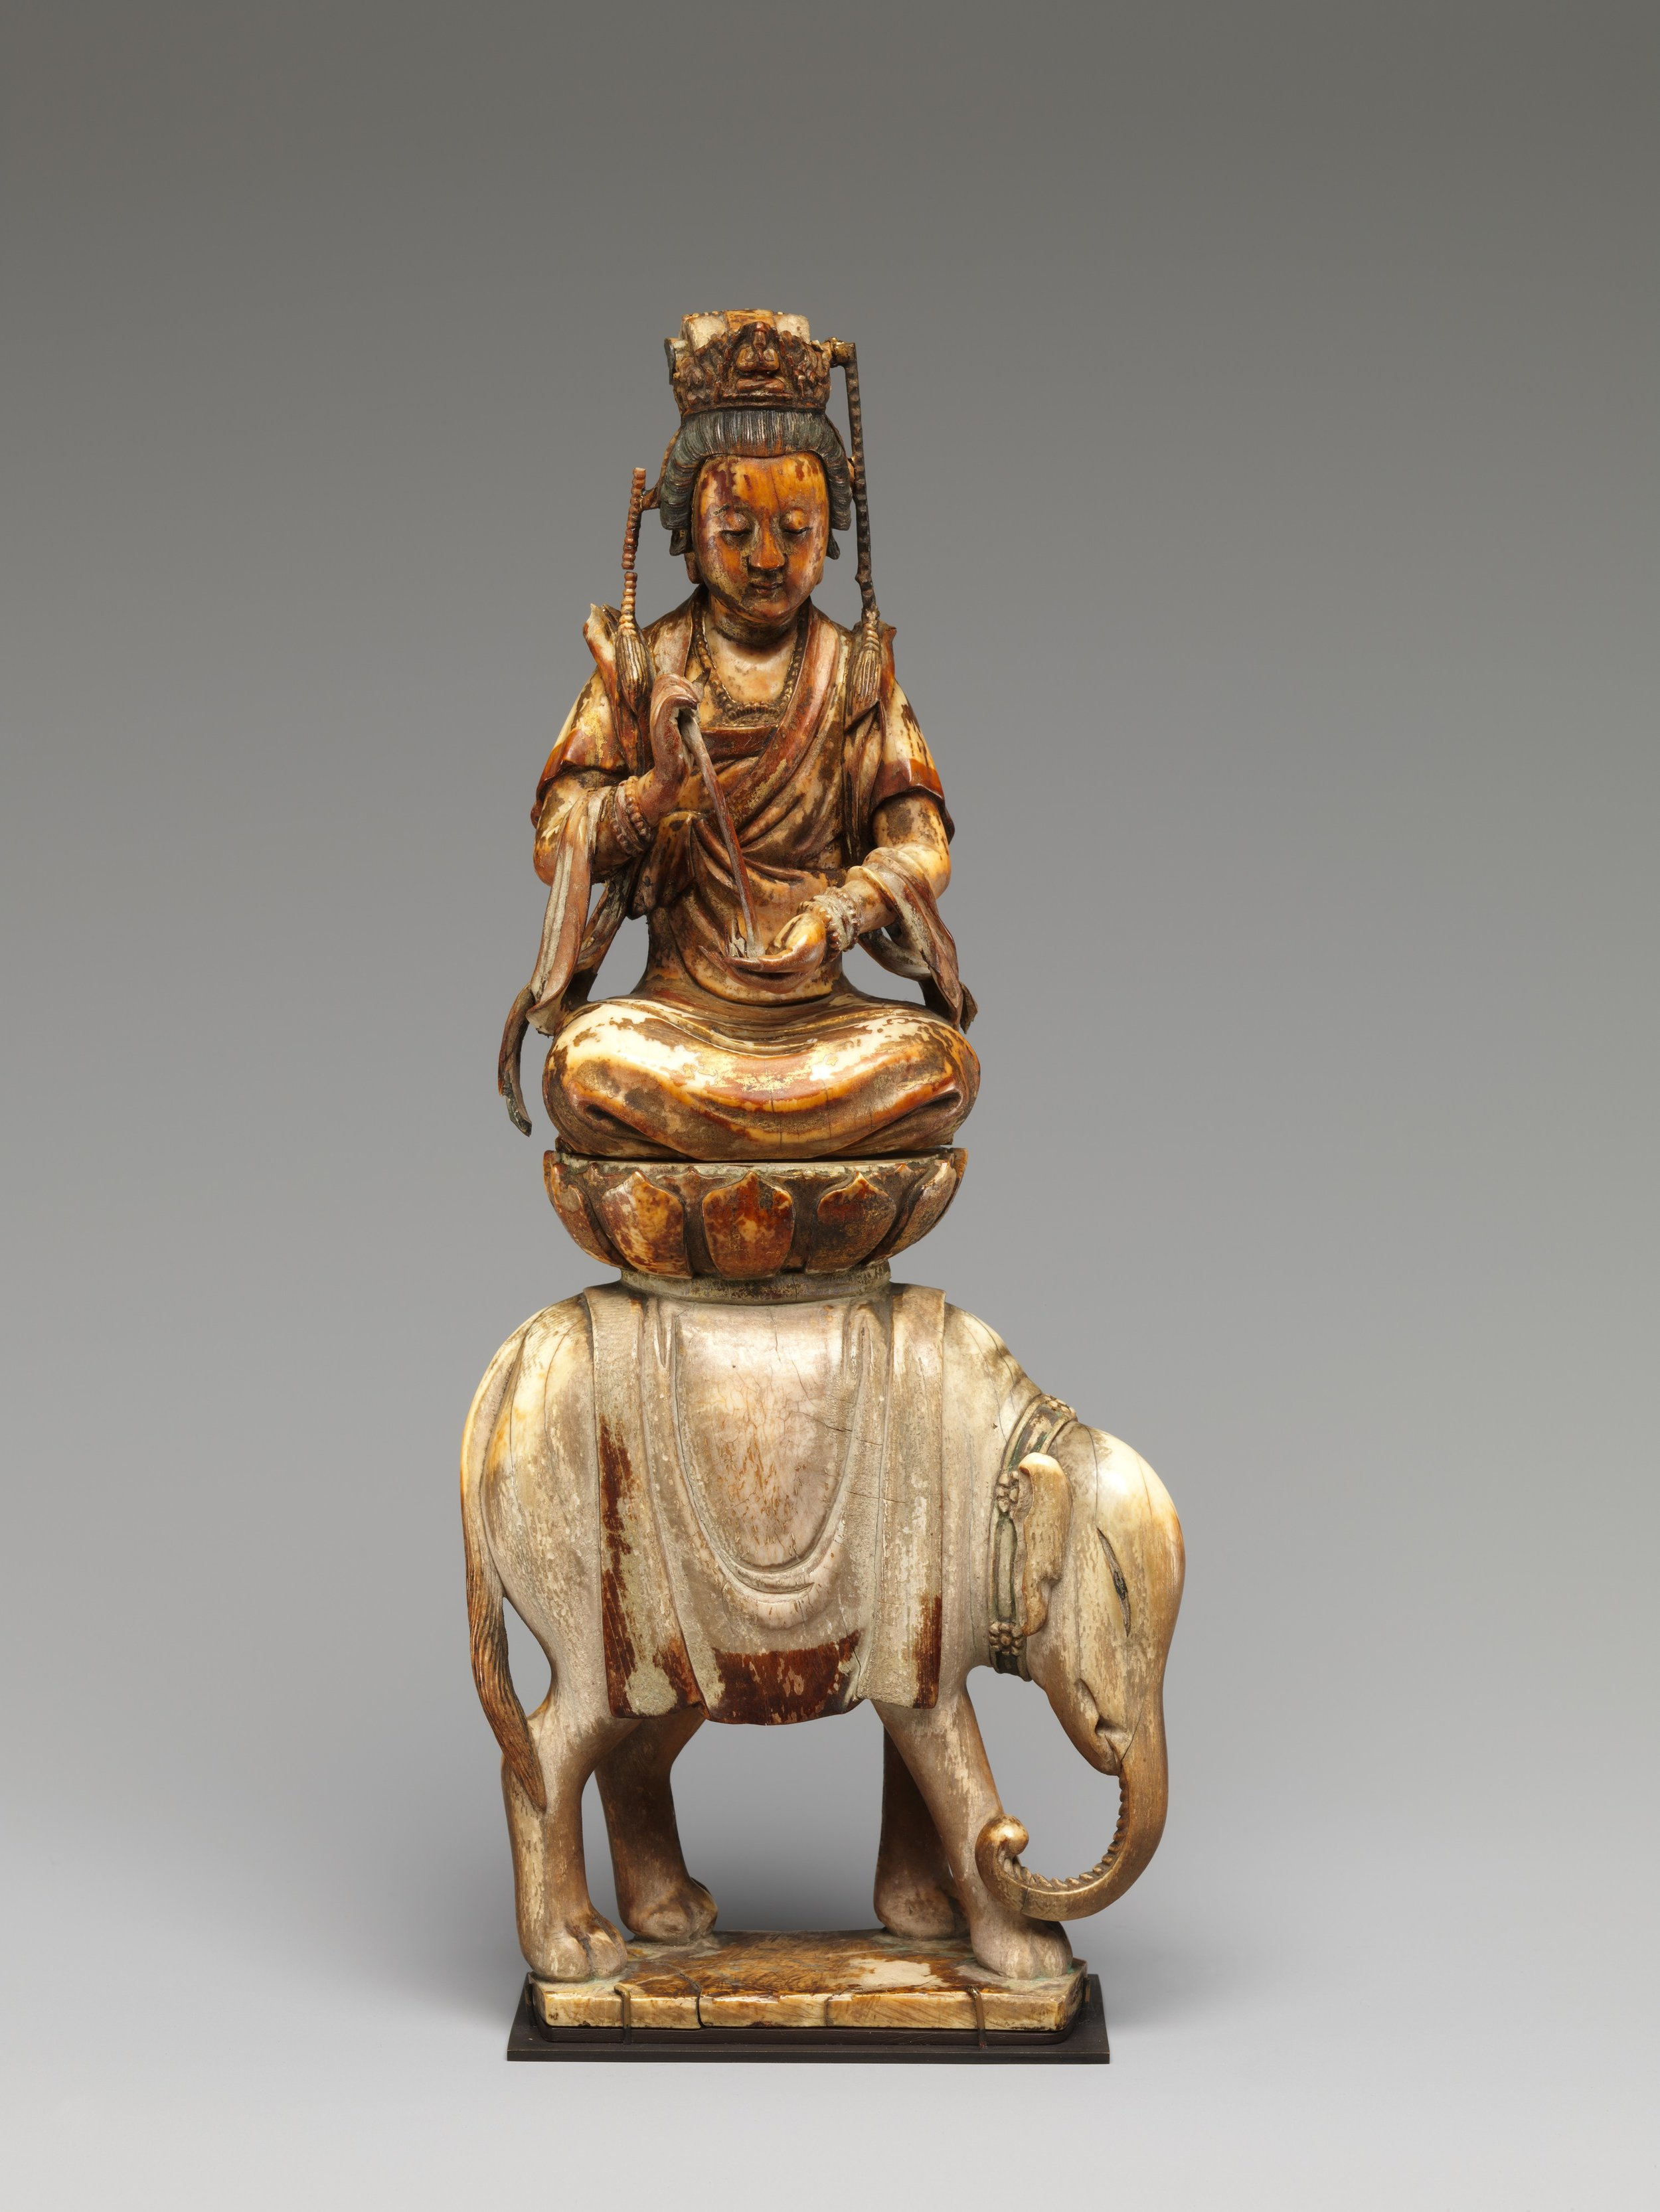 Bodhisattva Samantabhadra (Puxian). 12th-14th century. Southern Song to Yuan dynasty. China. Image courtesy of  The Met .